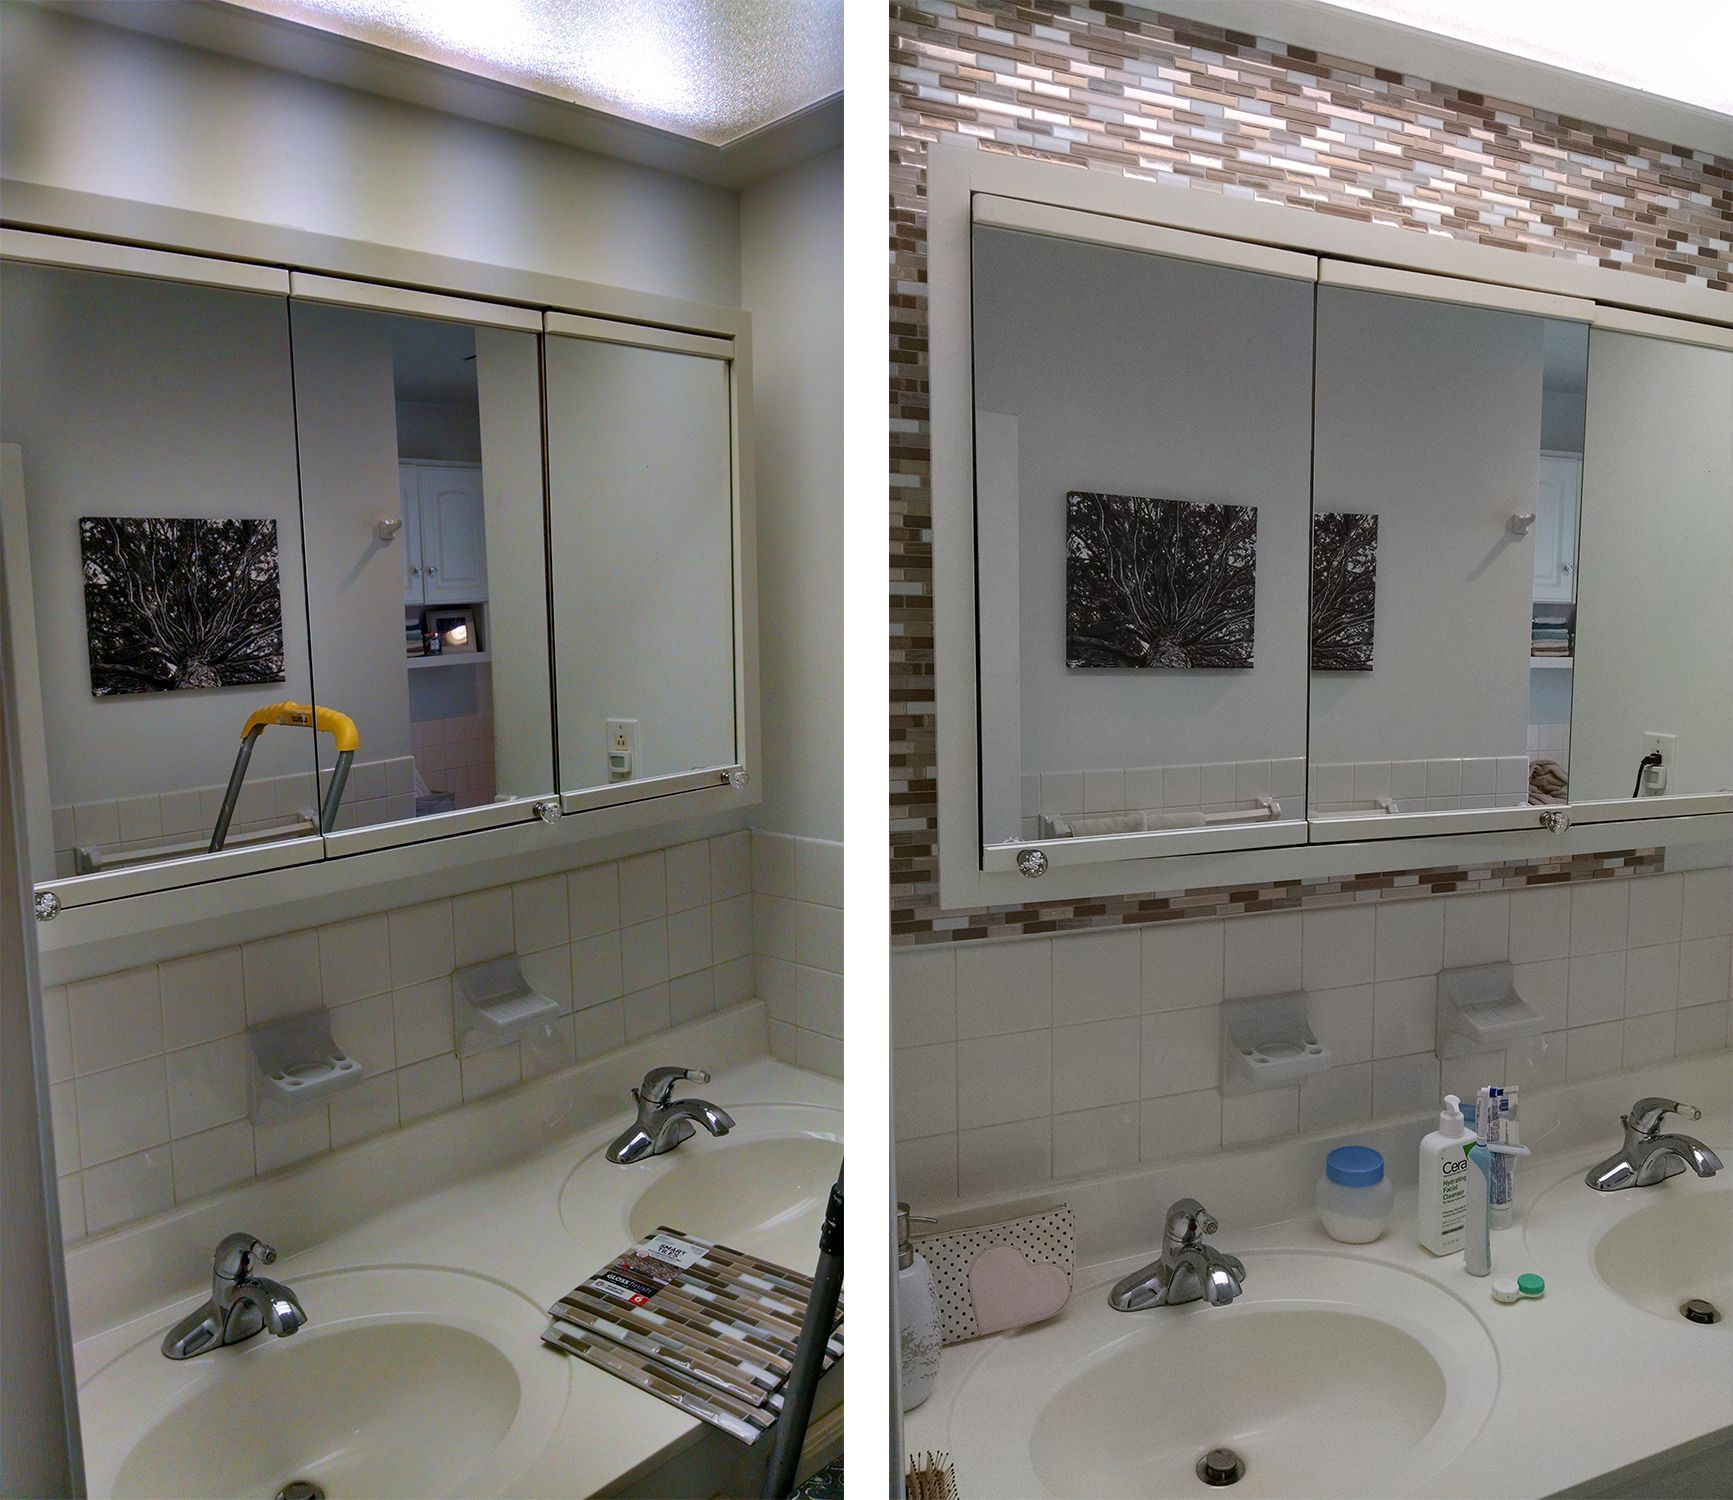 Muretto Durango Peel And Stick Tile Before And After Around Medicine Cab Bath Vanity Restroom Remodel Smart Tiles Tile Mirror Frame